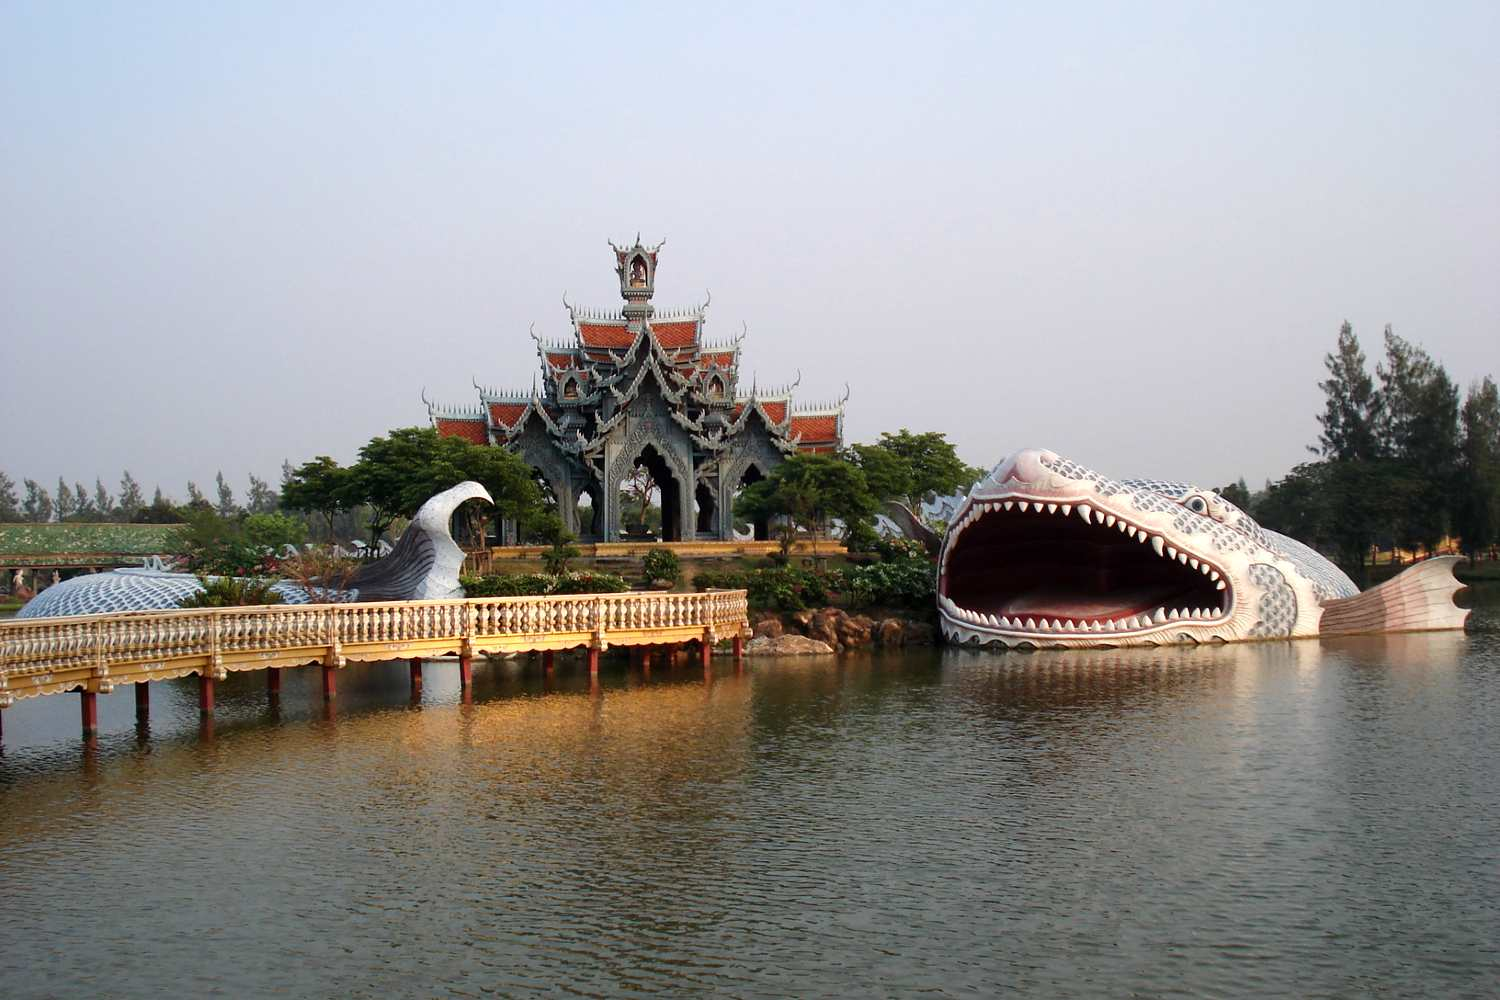 Immense image of a large fish with an open mouth in the water in The Ancient City in Bangkok, Thailand